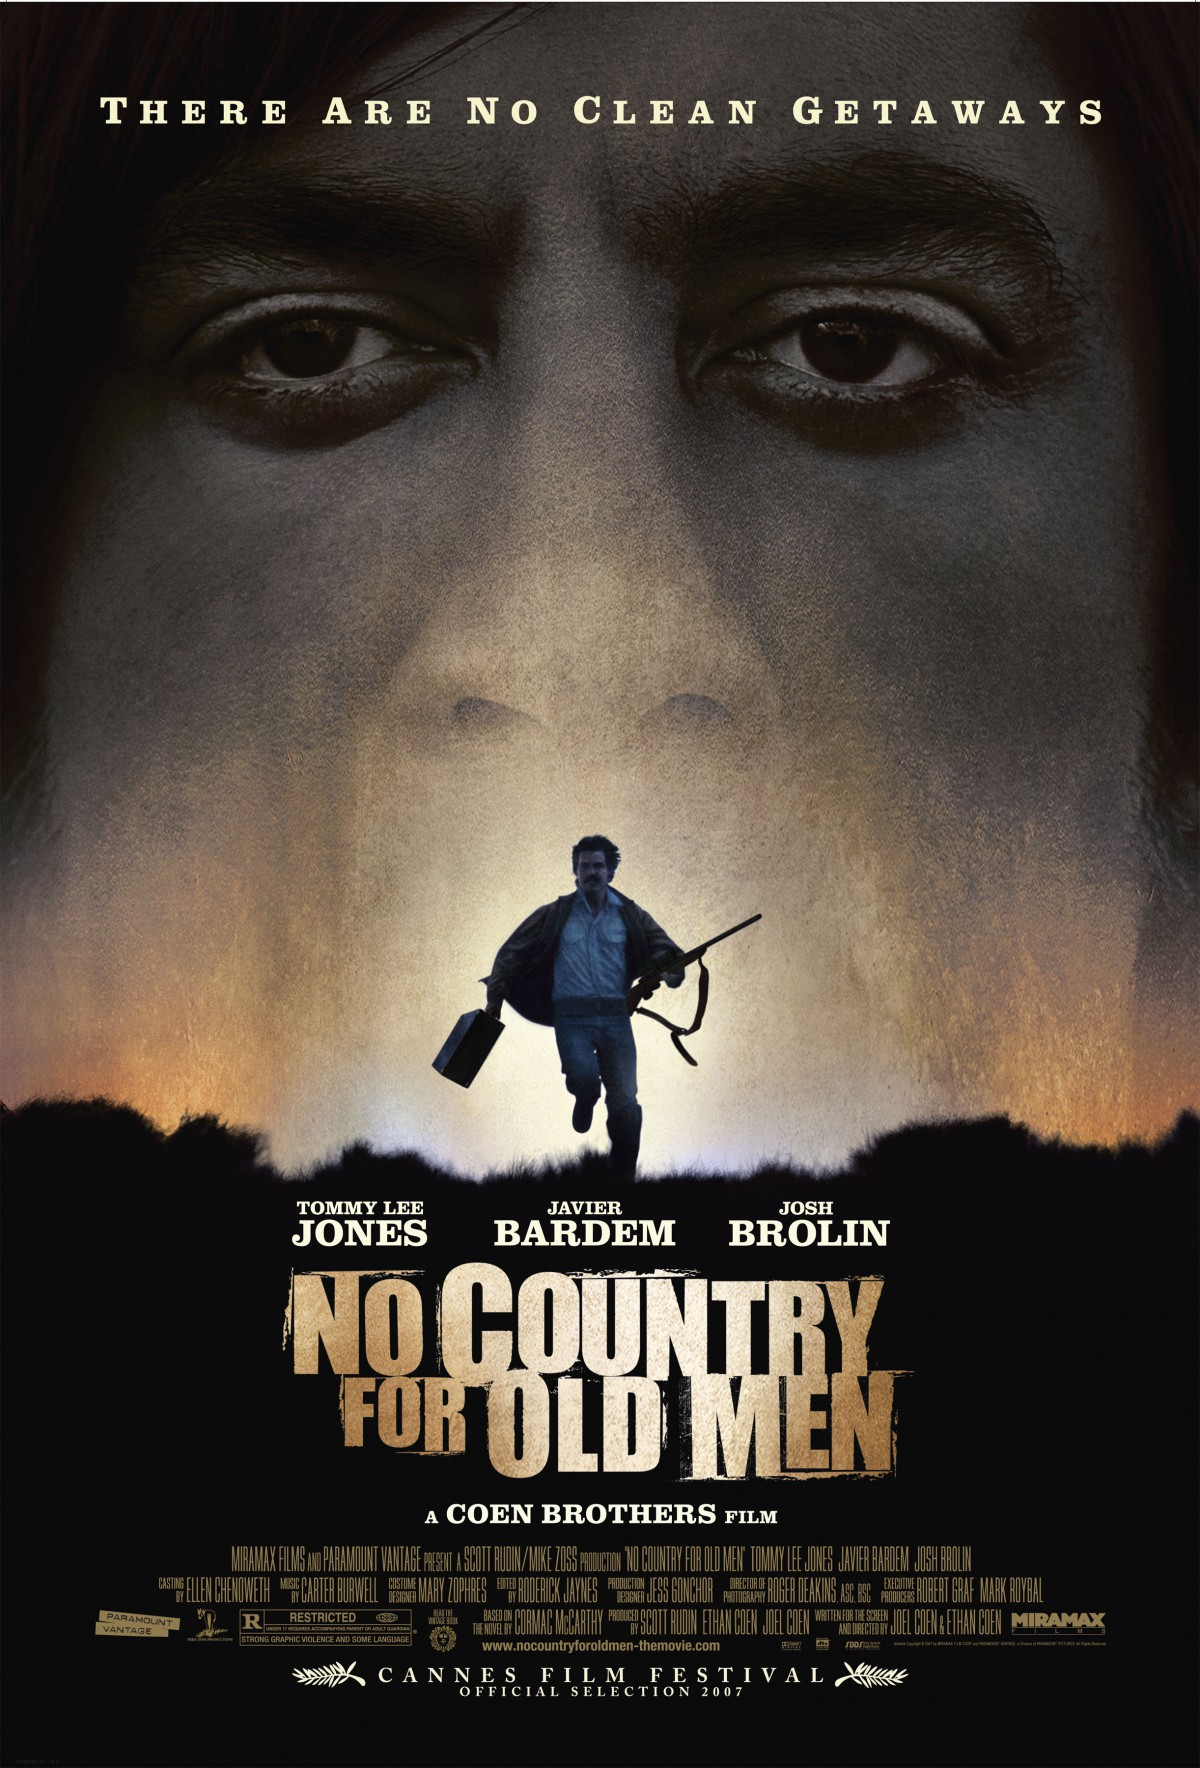 52. No Country for Old Men (2007)